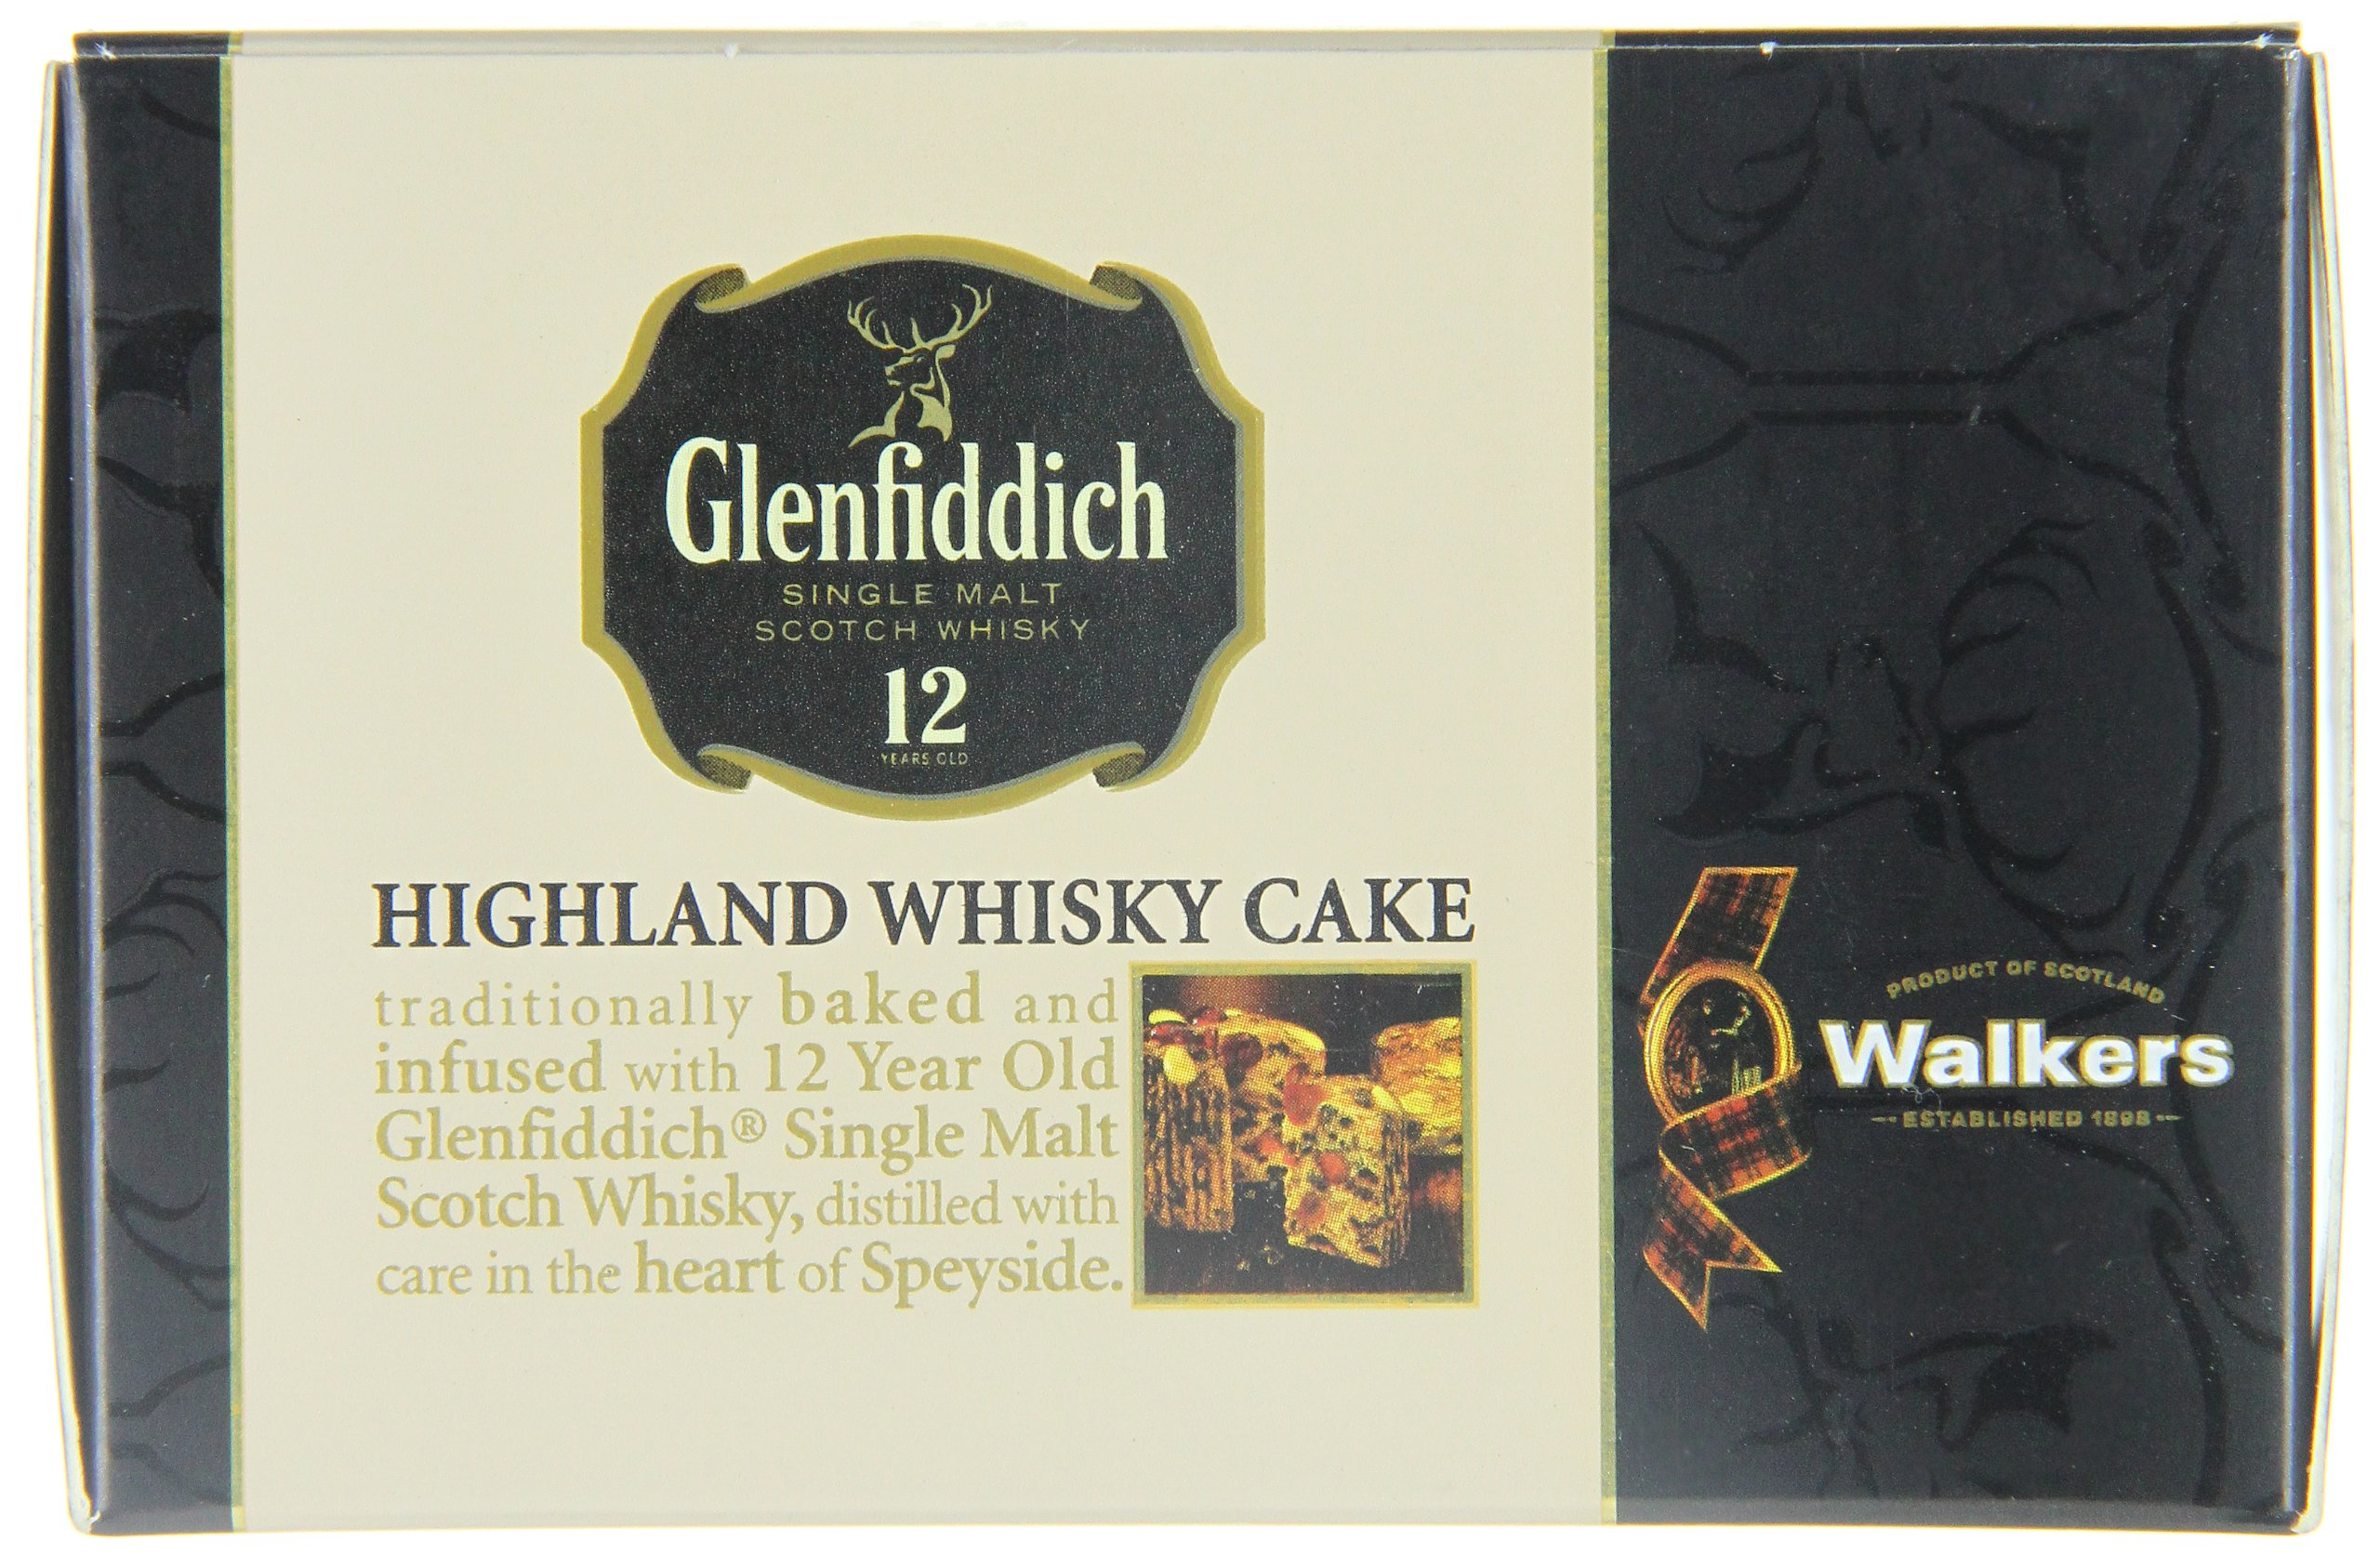 Walkers Shortbread Glenfiddich Highland Whisky Cake, 14.1 Ounce Box Traditional Scottish Fruit Cake with Glenfiddich Malt Whisky, Cherries, Sultanas by Walkers Shortbread (Image #8)